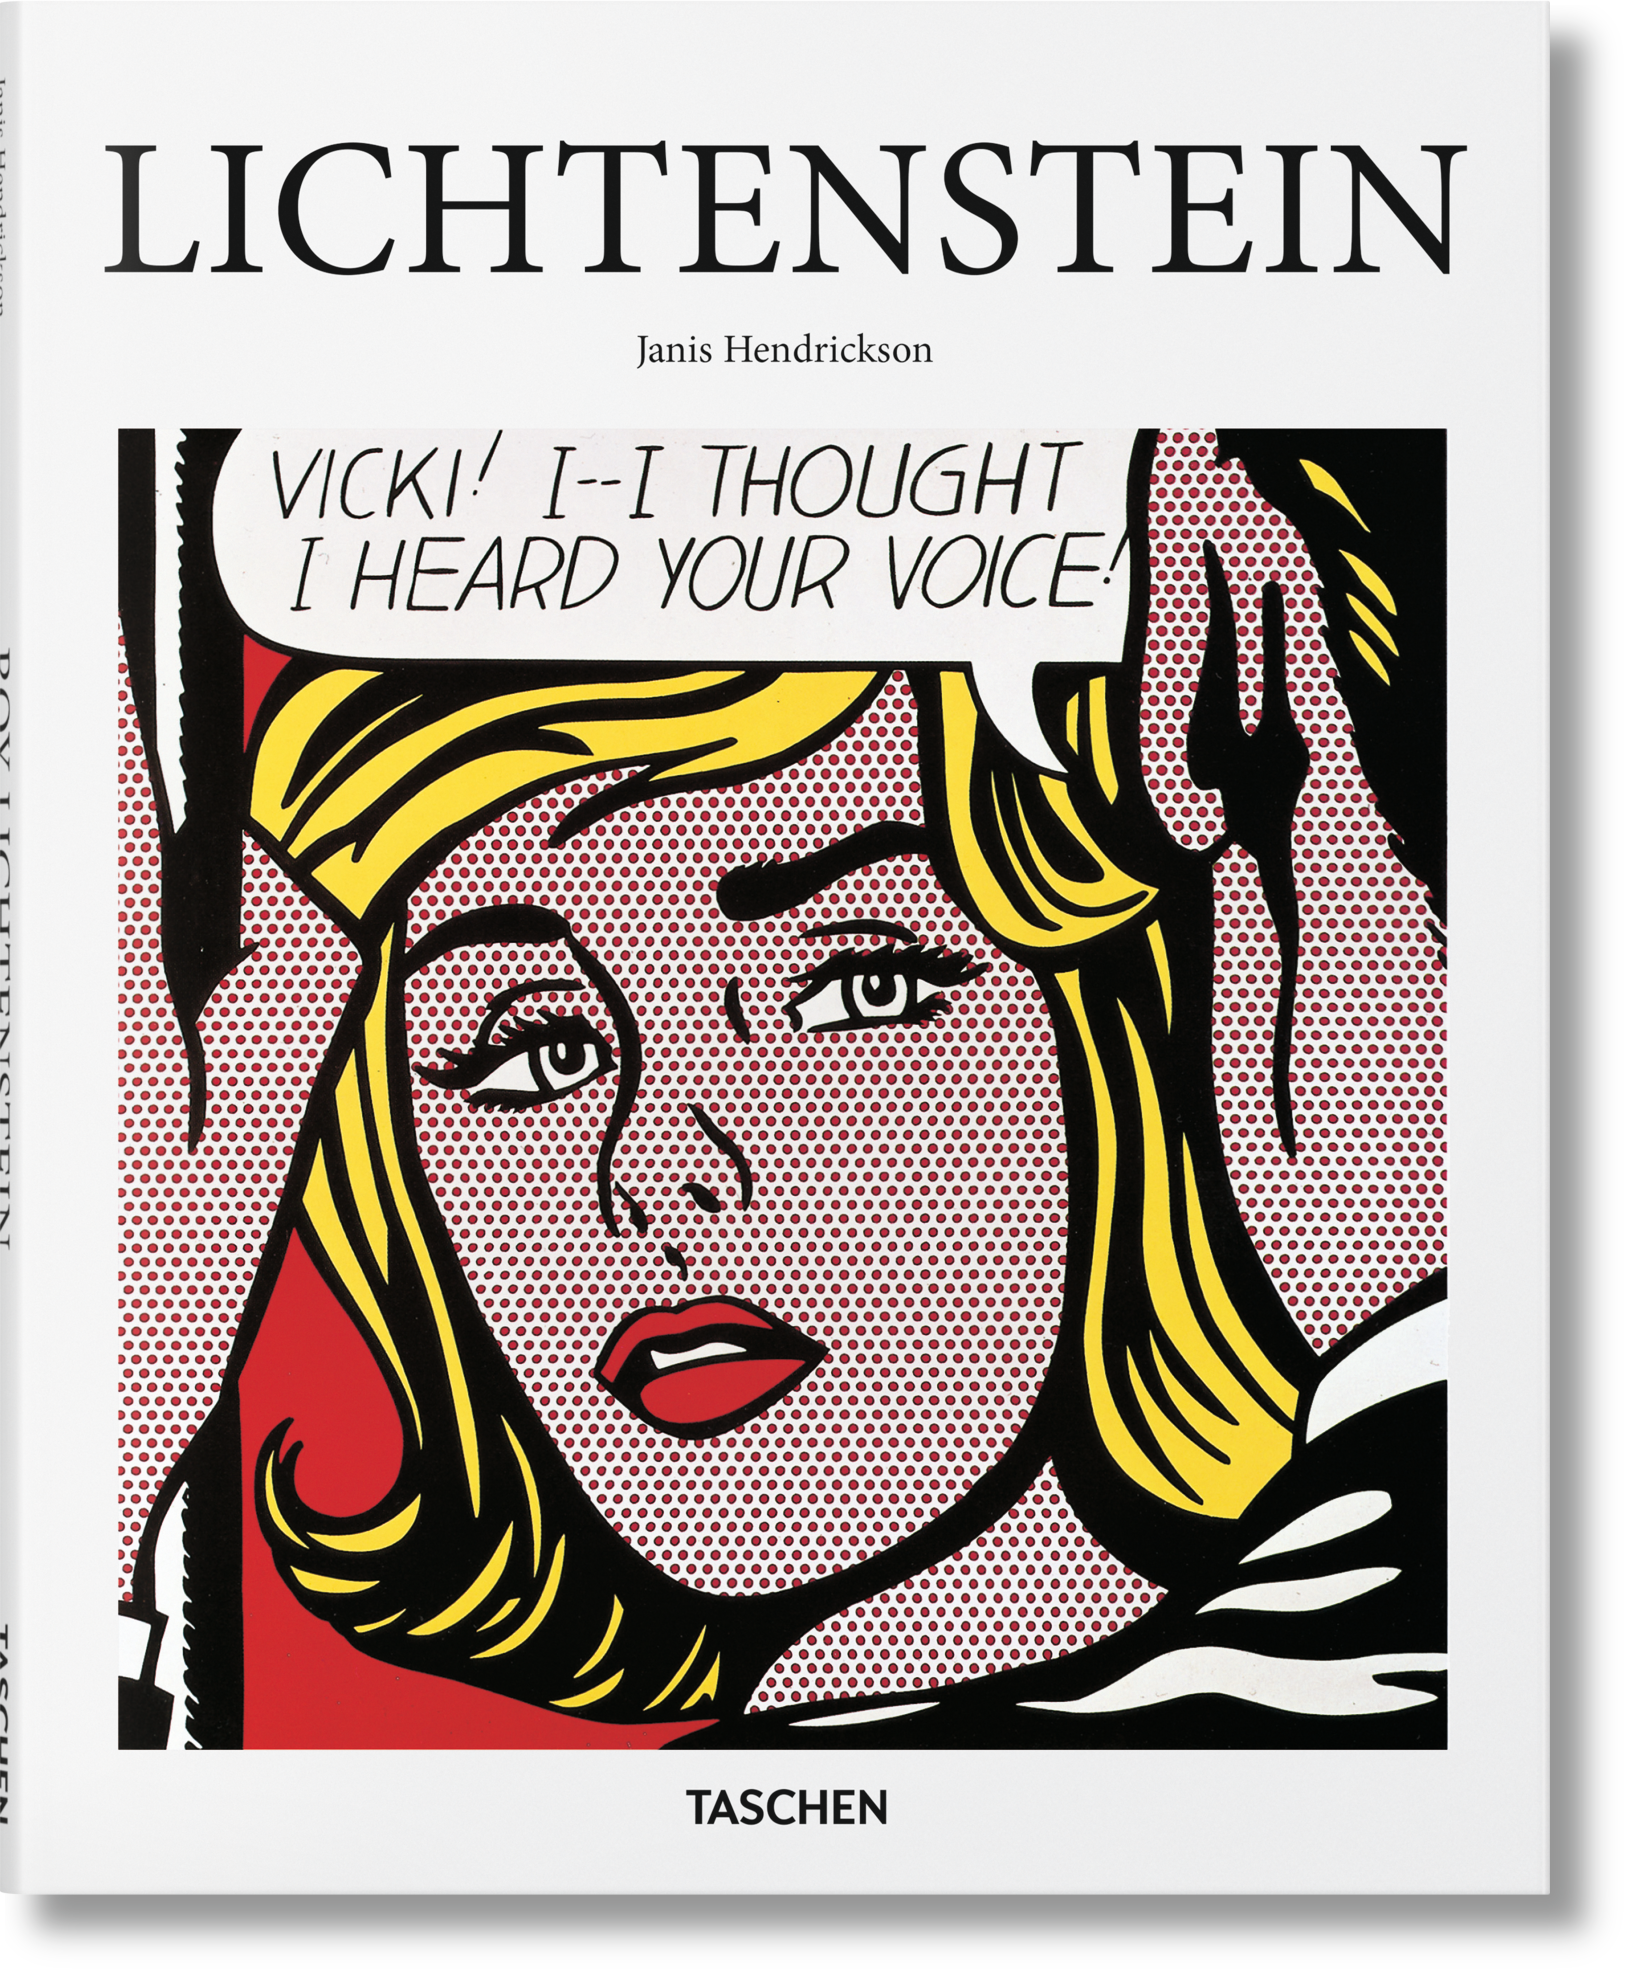 Roy Lichtenstein - The Brant Foundation Shop